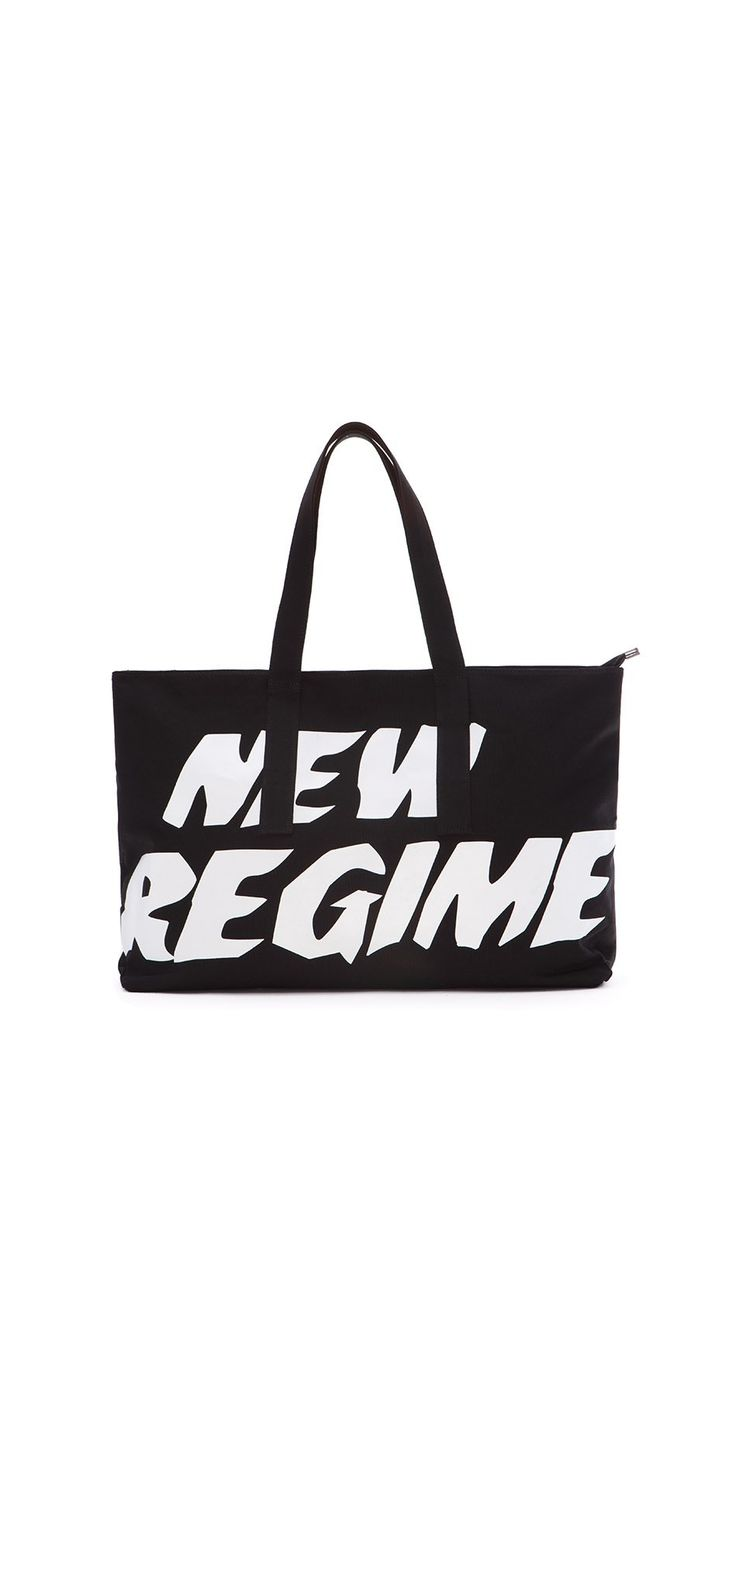 Oversized Logo Tote Bag (Black) / Made of durable canvas, this oversized tote bag is both travel and leisure friendly, and features a New Regime signature logo print in white at front and back. #fw17